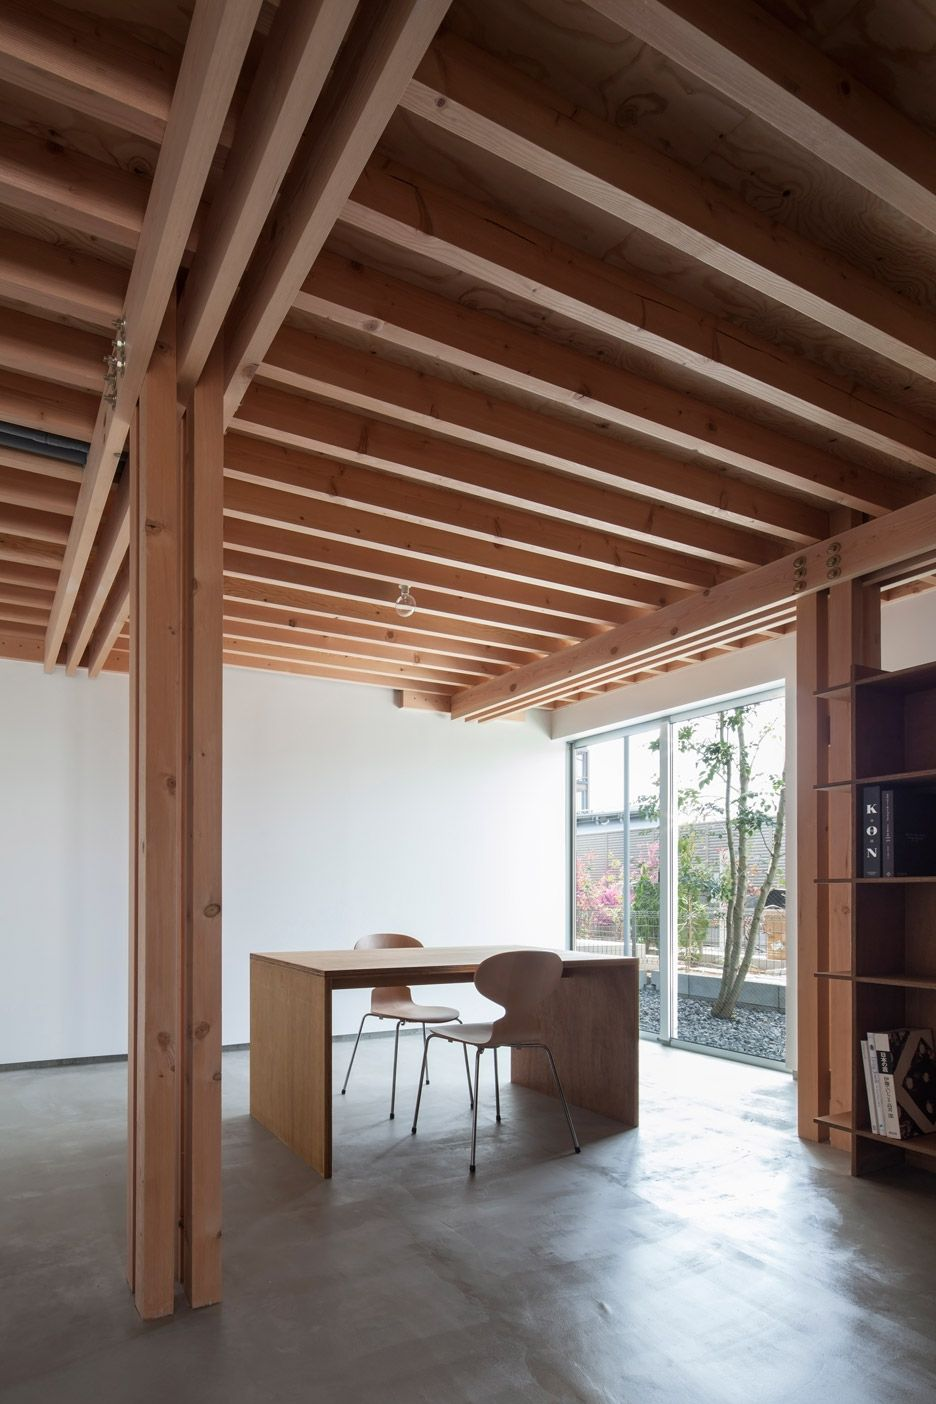 4 Columns Tokyo House By Ft Architects Wooden Columns Wood Architecture Timber Architecture